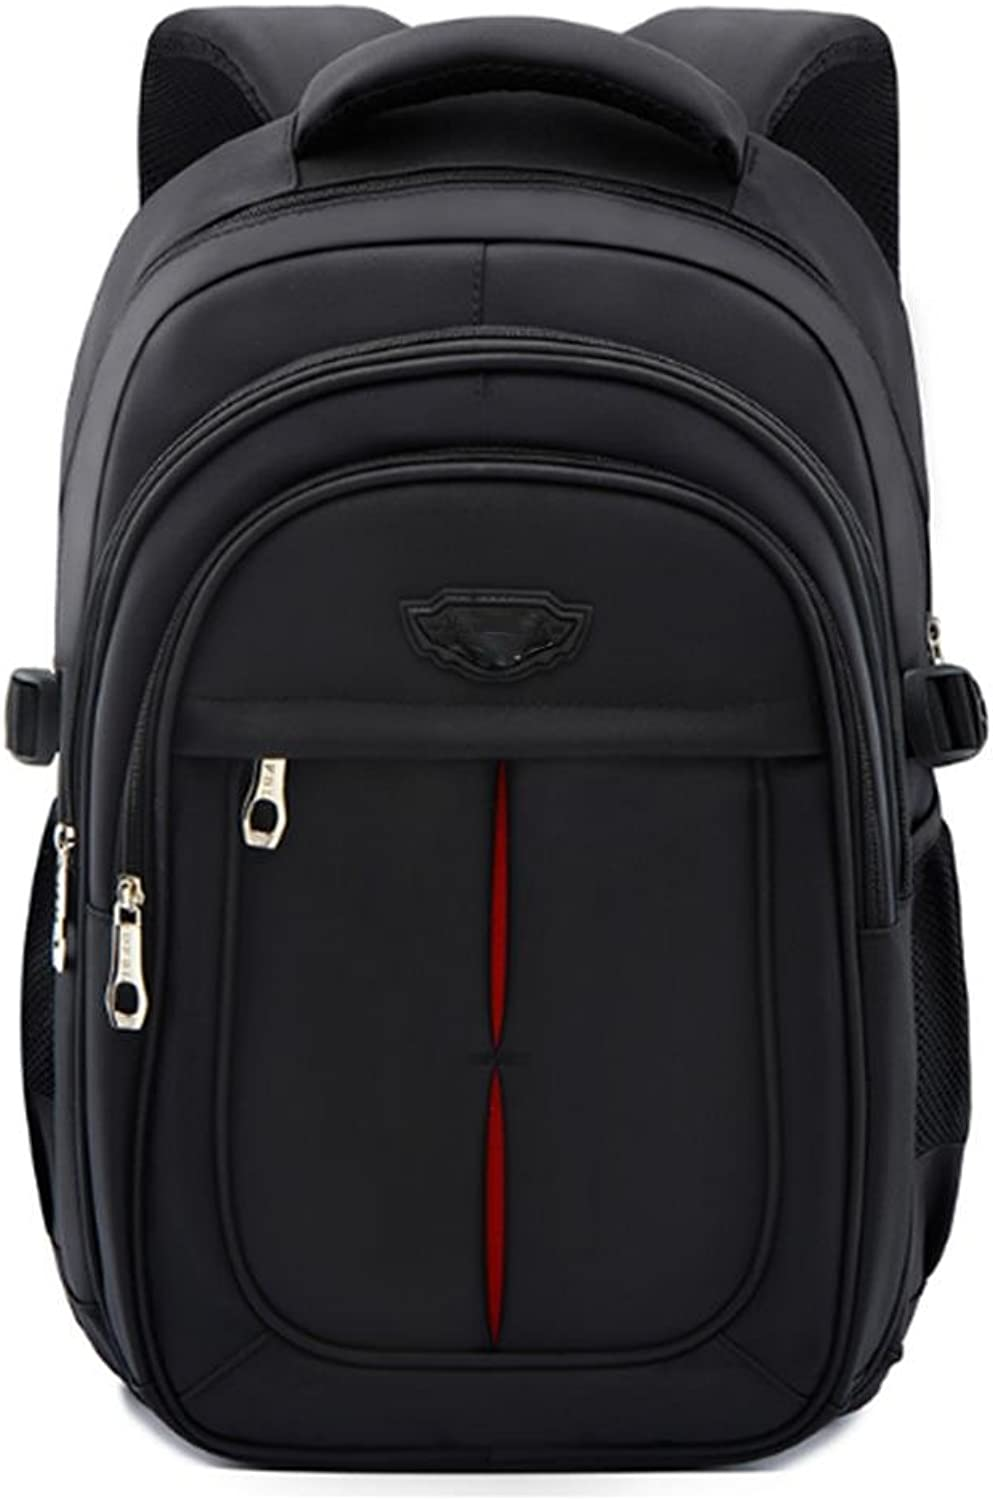 QPYC Student Backpack 16 Inch Computer Notebook Waterproof Travel Leisure Business Package Black